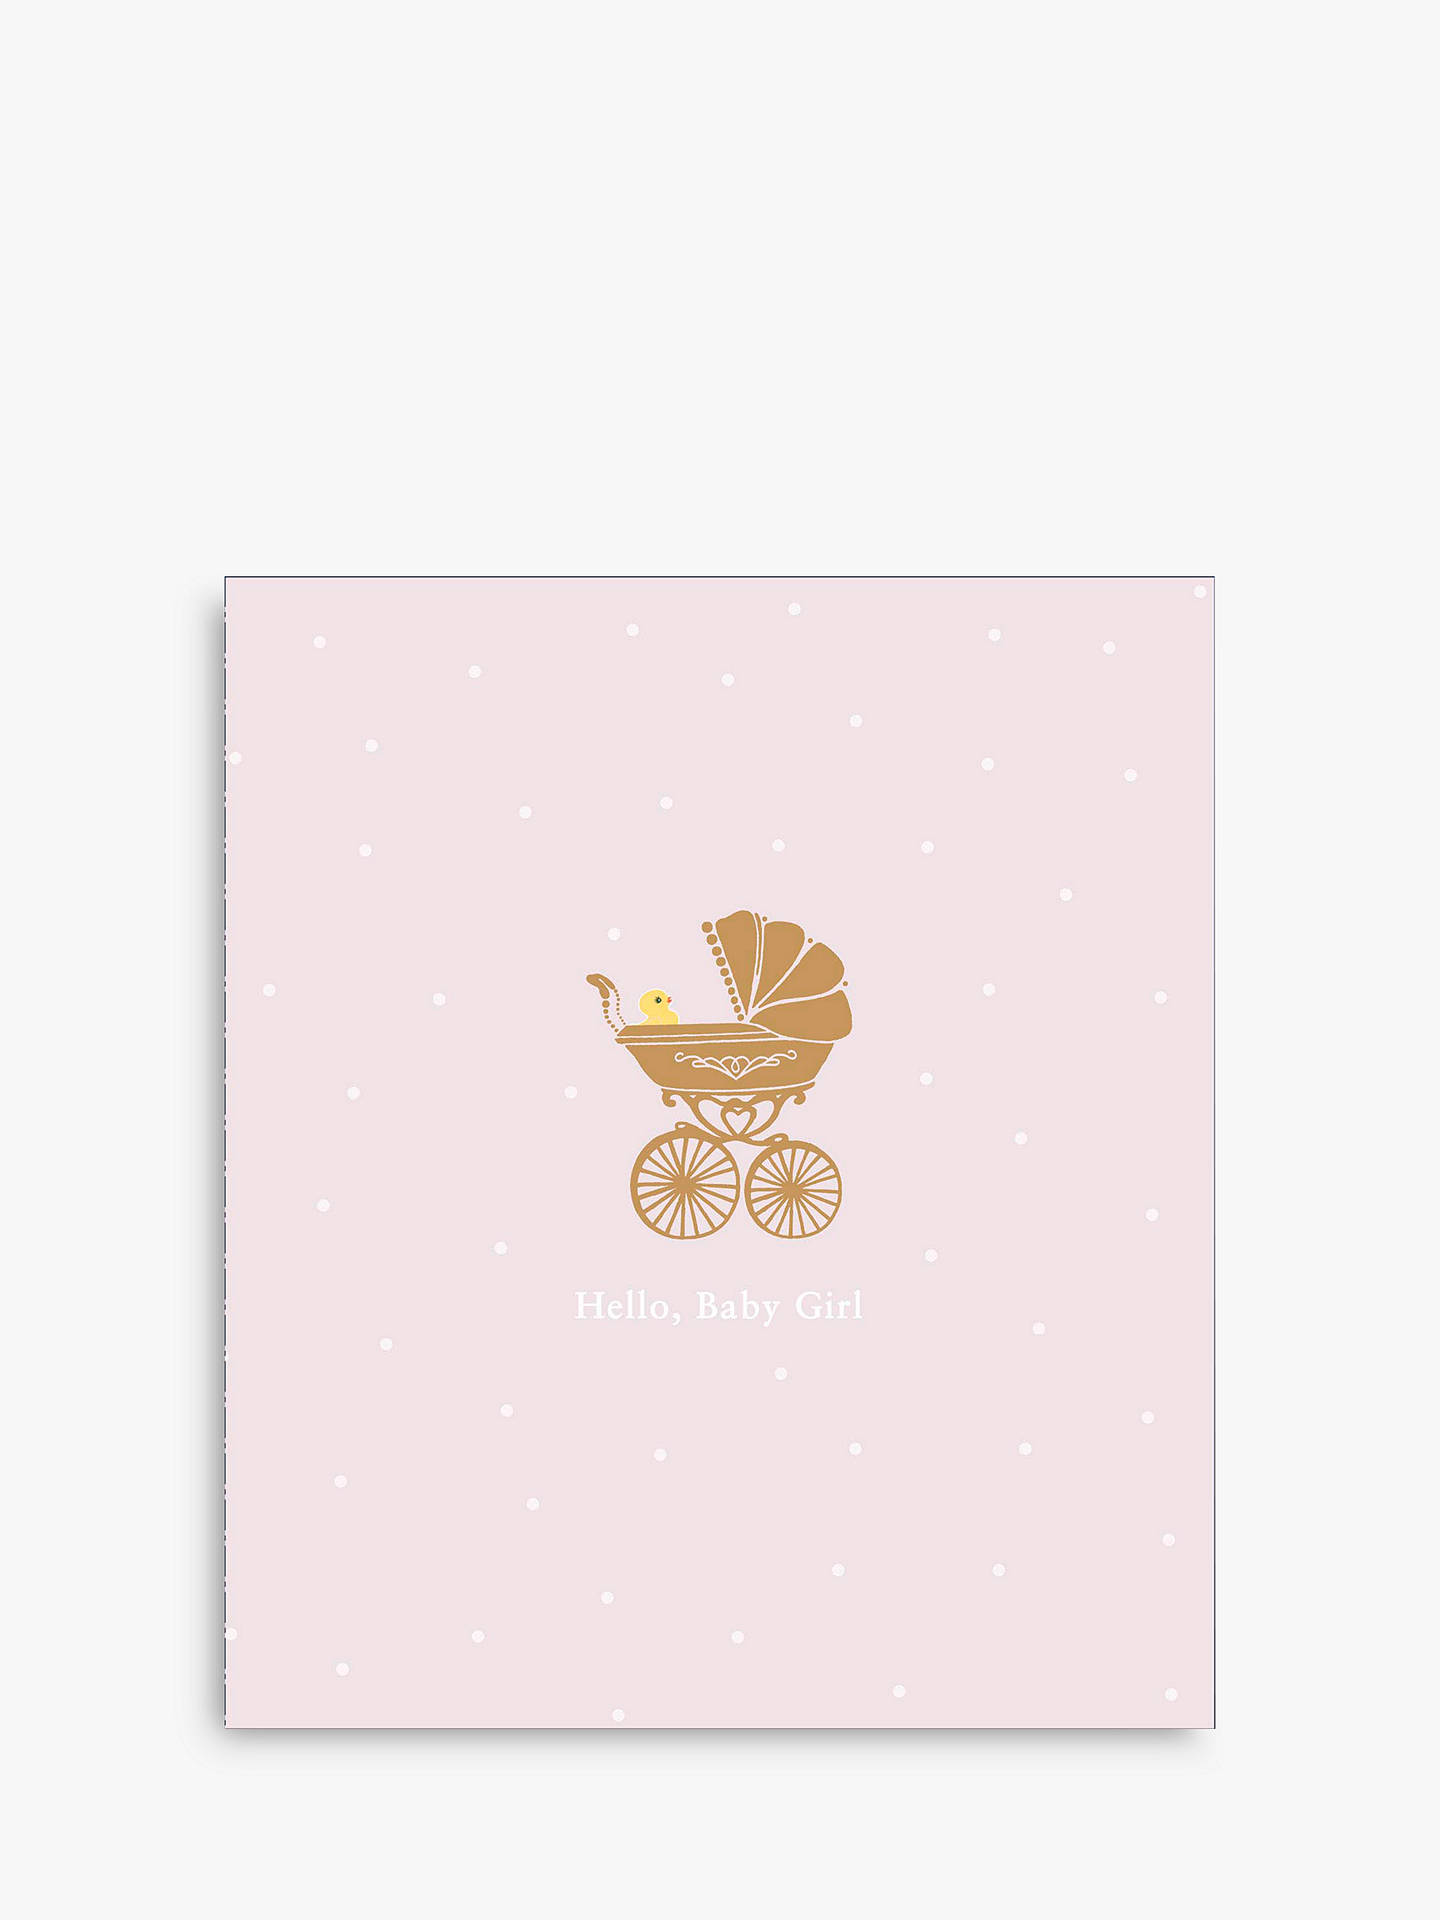 Uk greetings congratulations on your baby girl card at john lewis buyuk greetings congratulations on your baby girl card online at johnlewis m4hsunfo